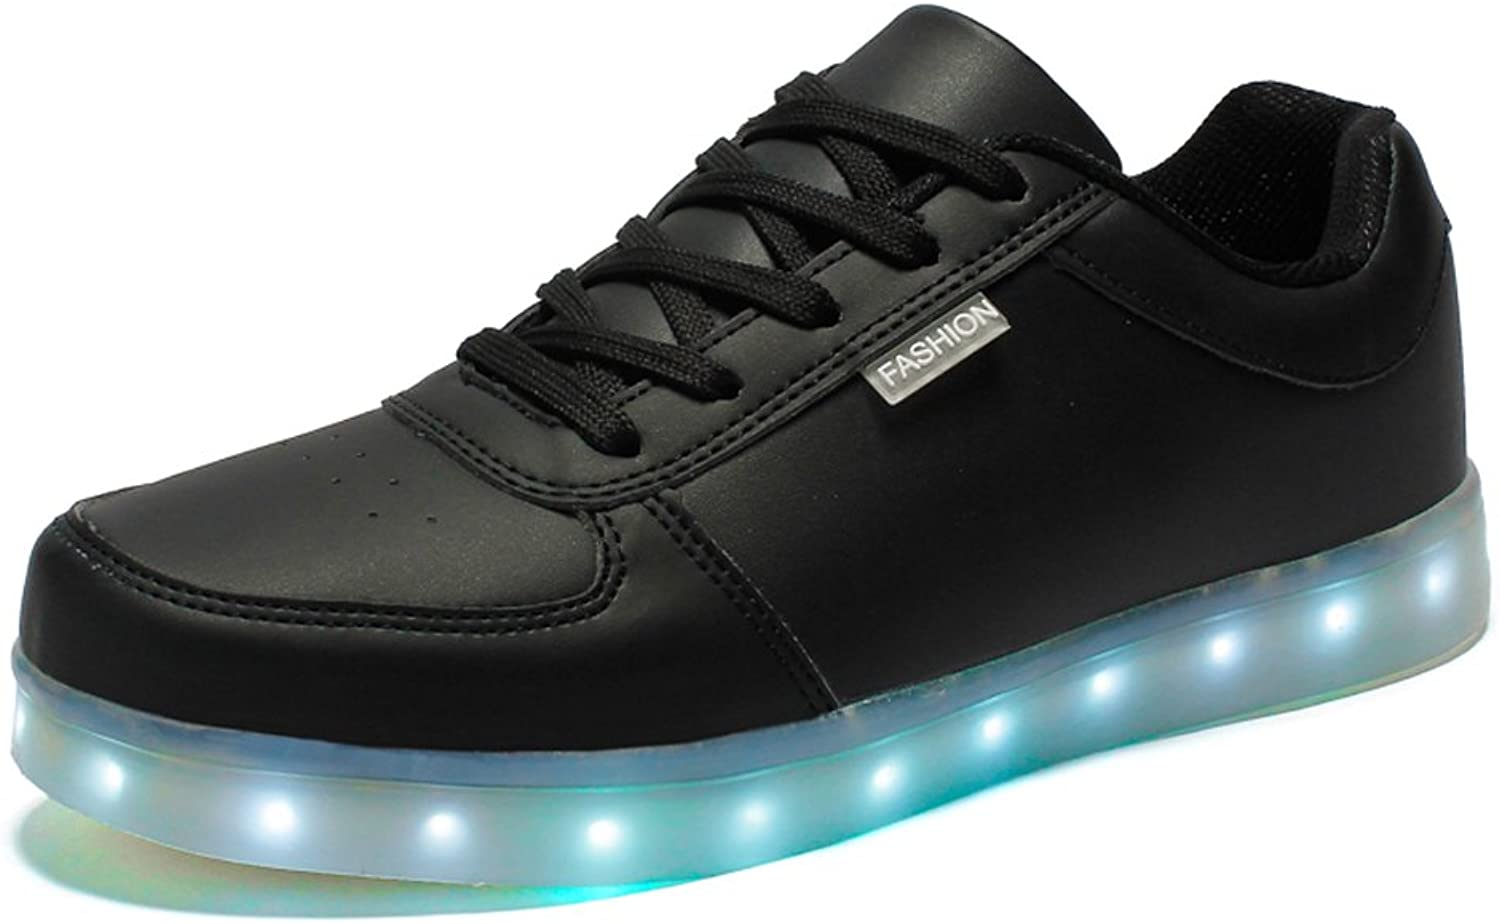 Ausom Men & Women 7 colors USB Charging LED shoes Flashing Sneakers Light Up Glowing Leisure Flat shoes